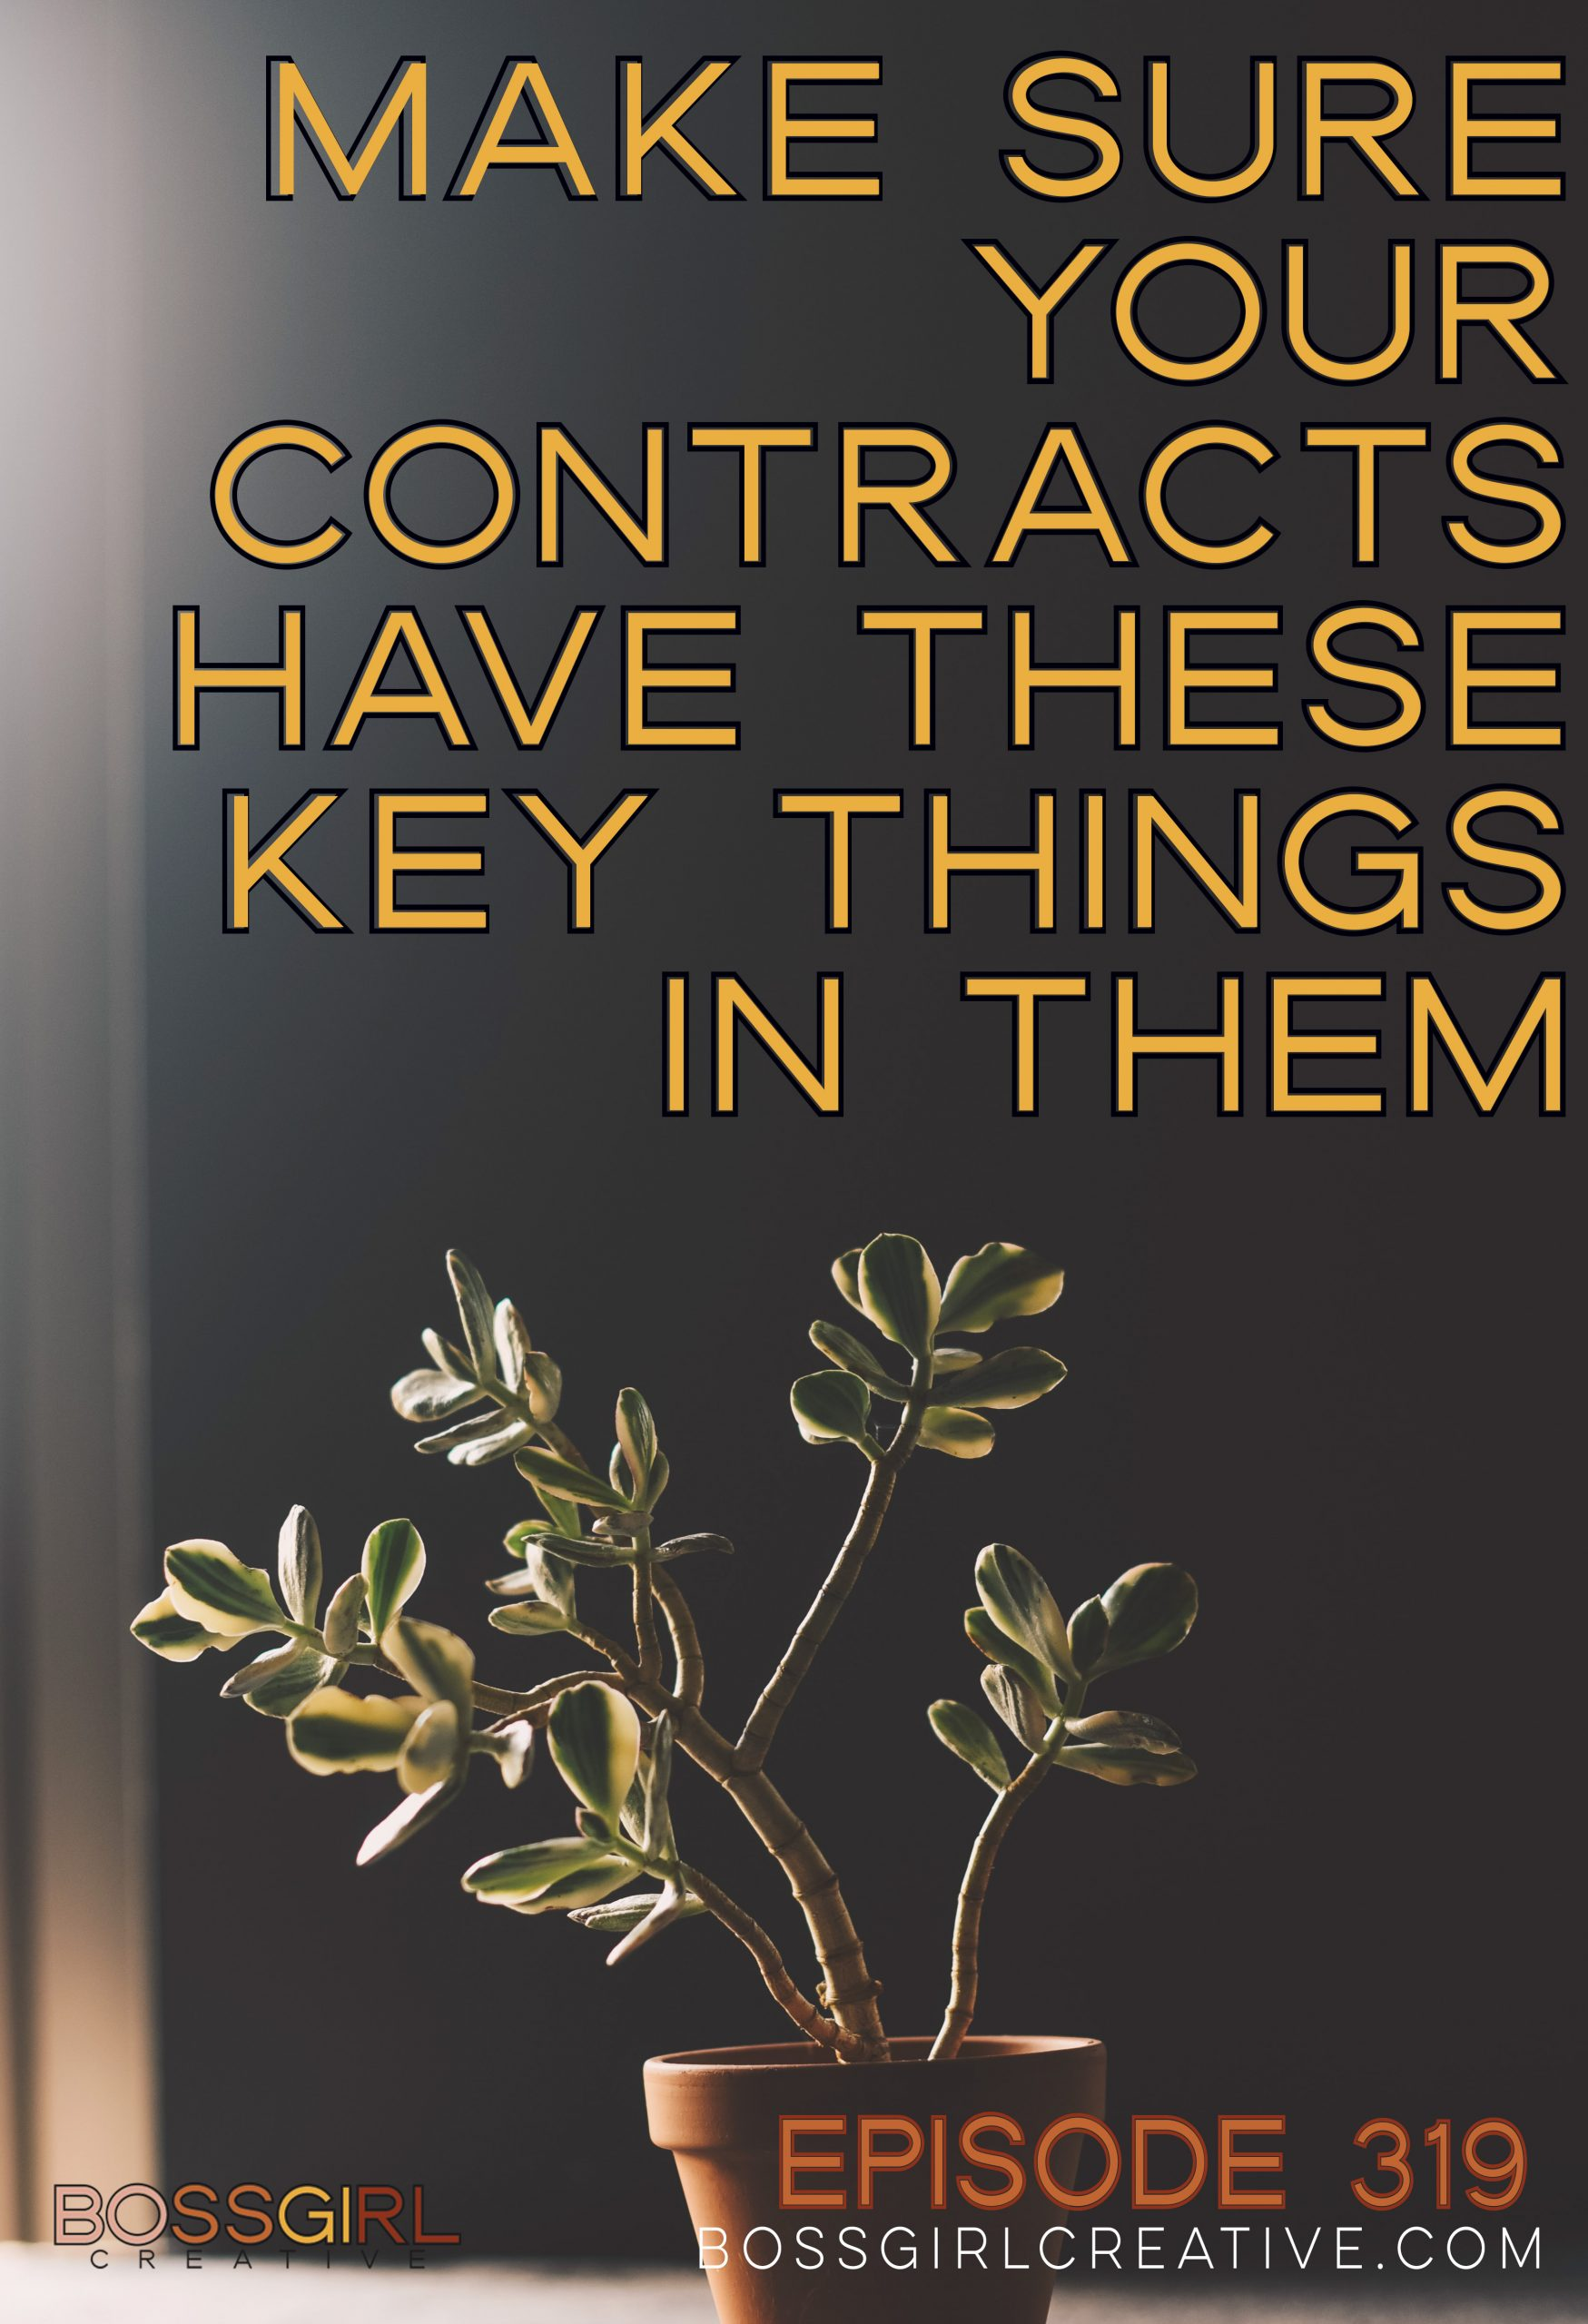 BGC Episode 319 - Make Sure Your Contracts Have These Key Things In Them